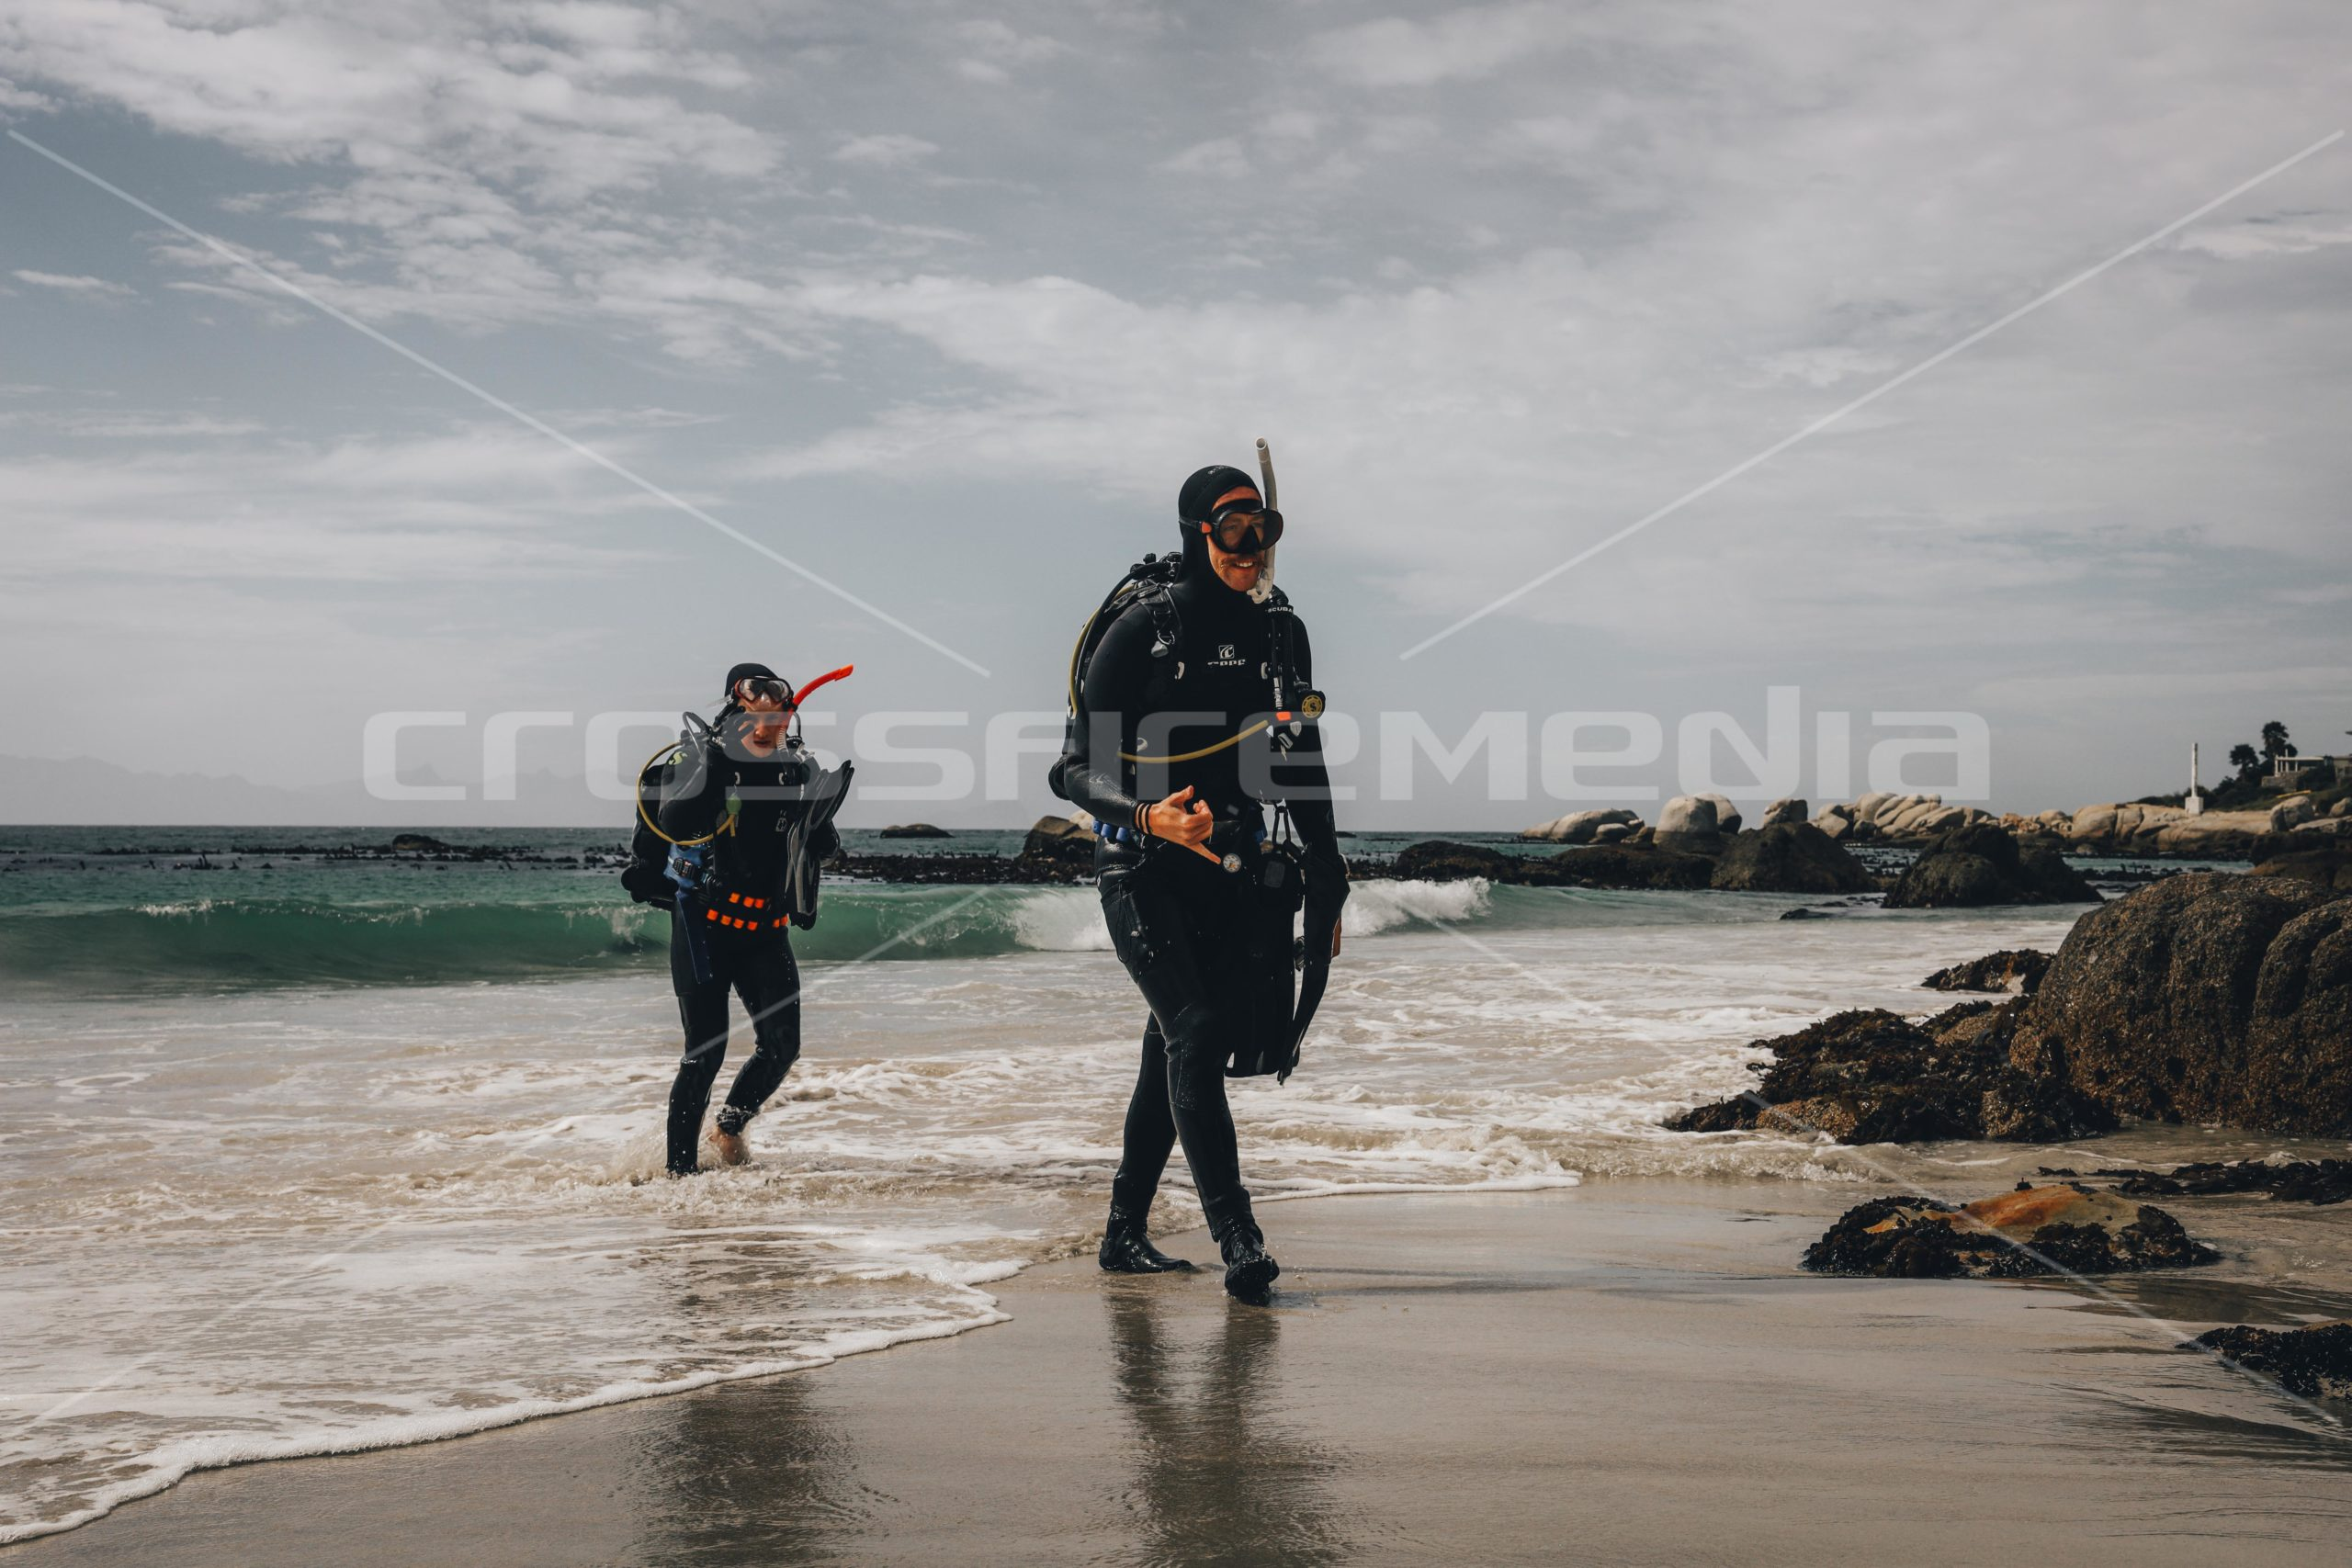 scubadivers on the beach after diving